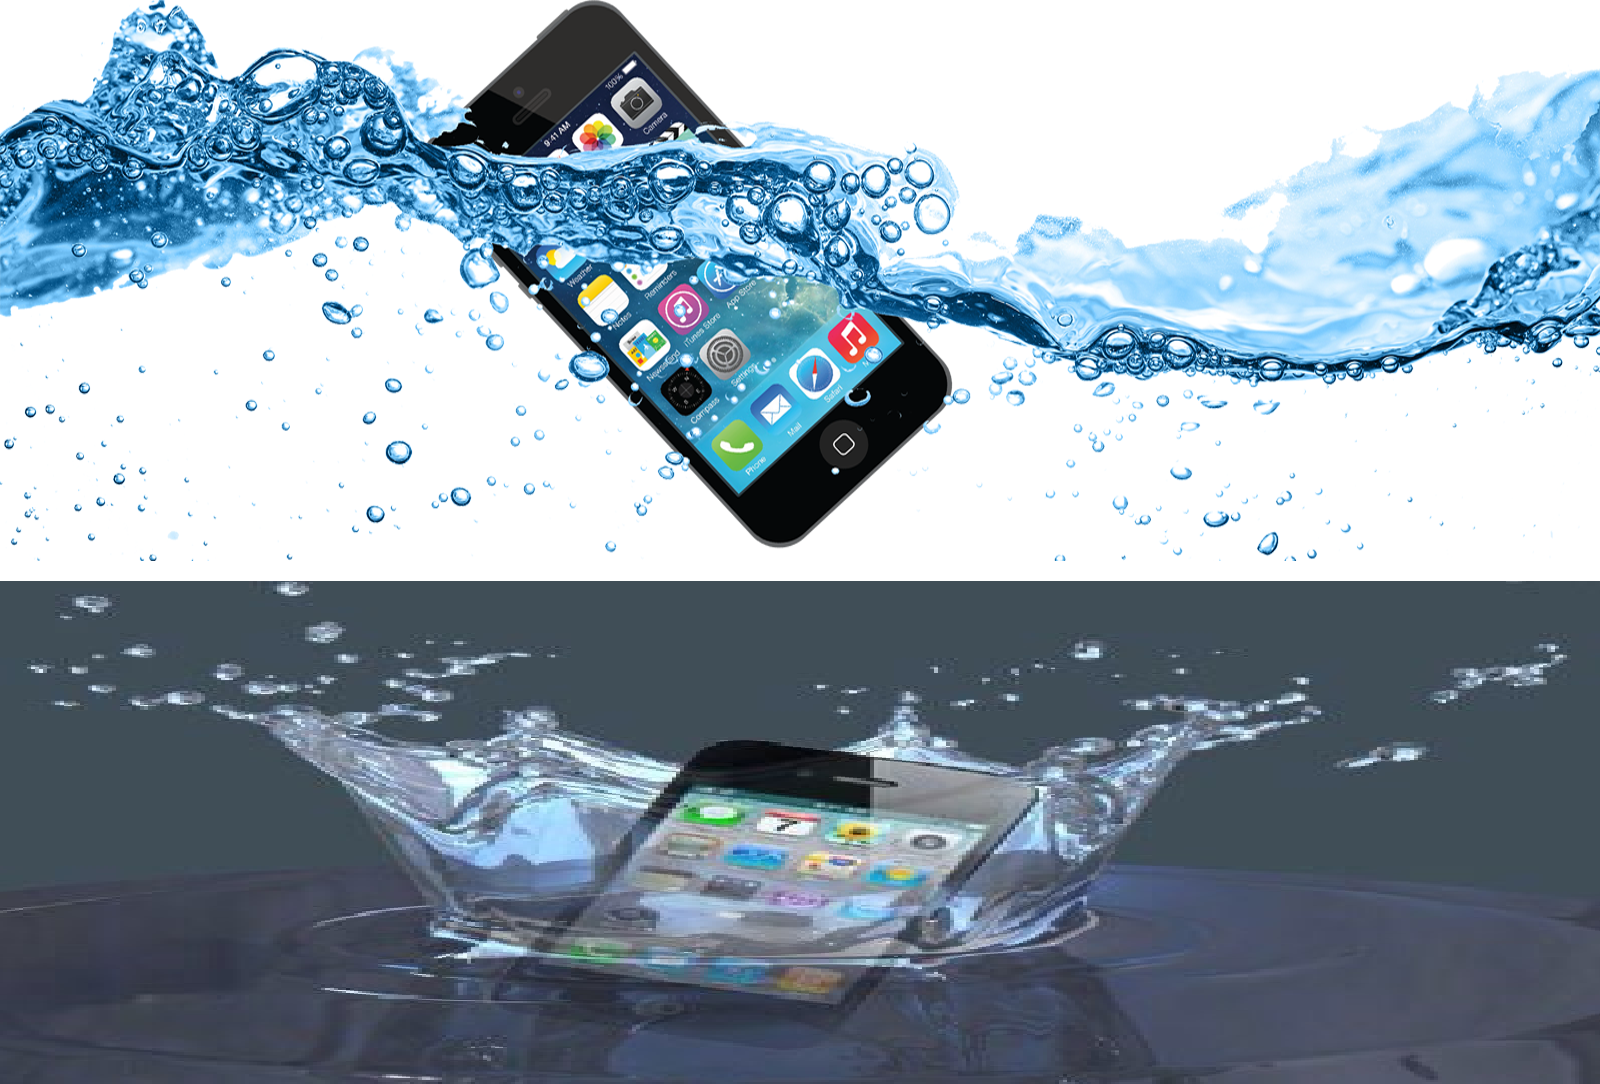 Iphone-dropped-in-water-reviveaphone-kit